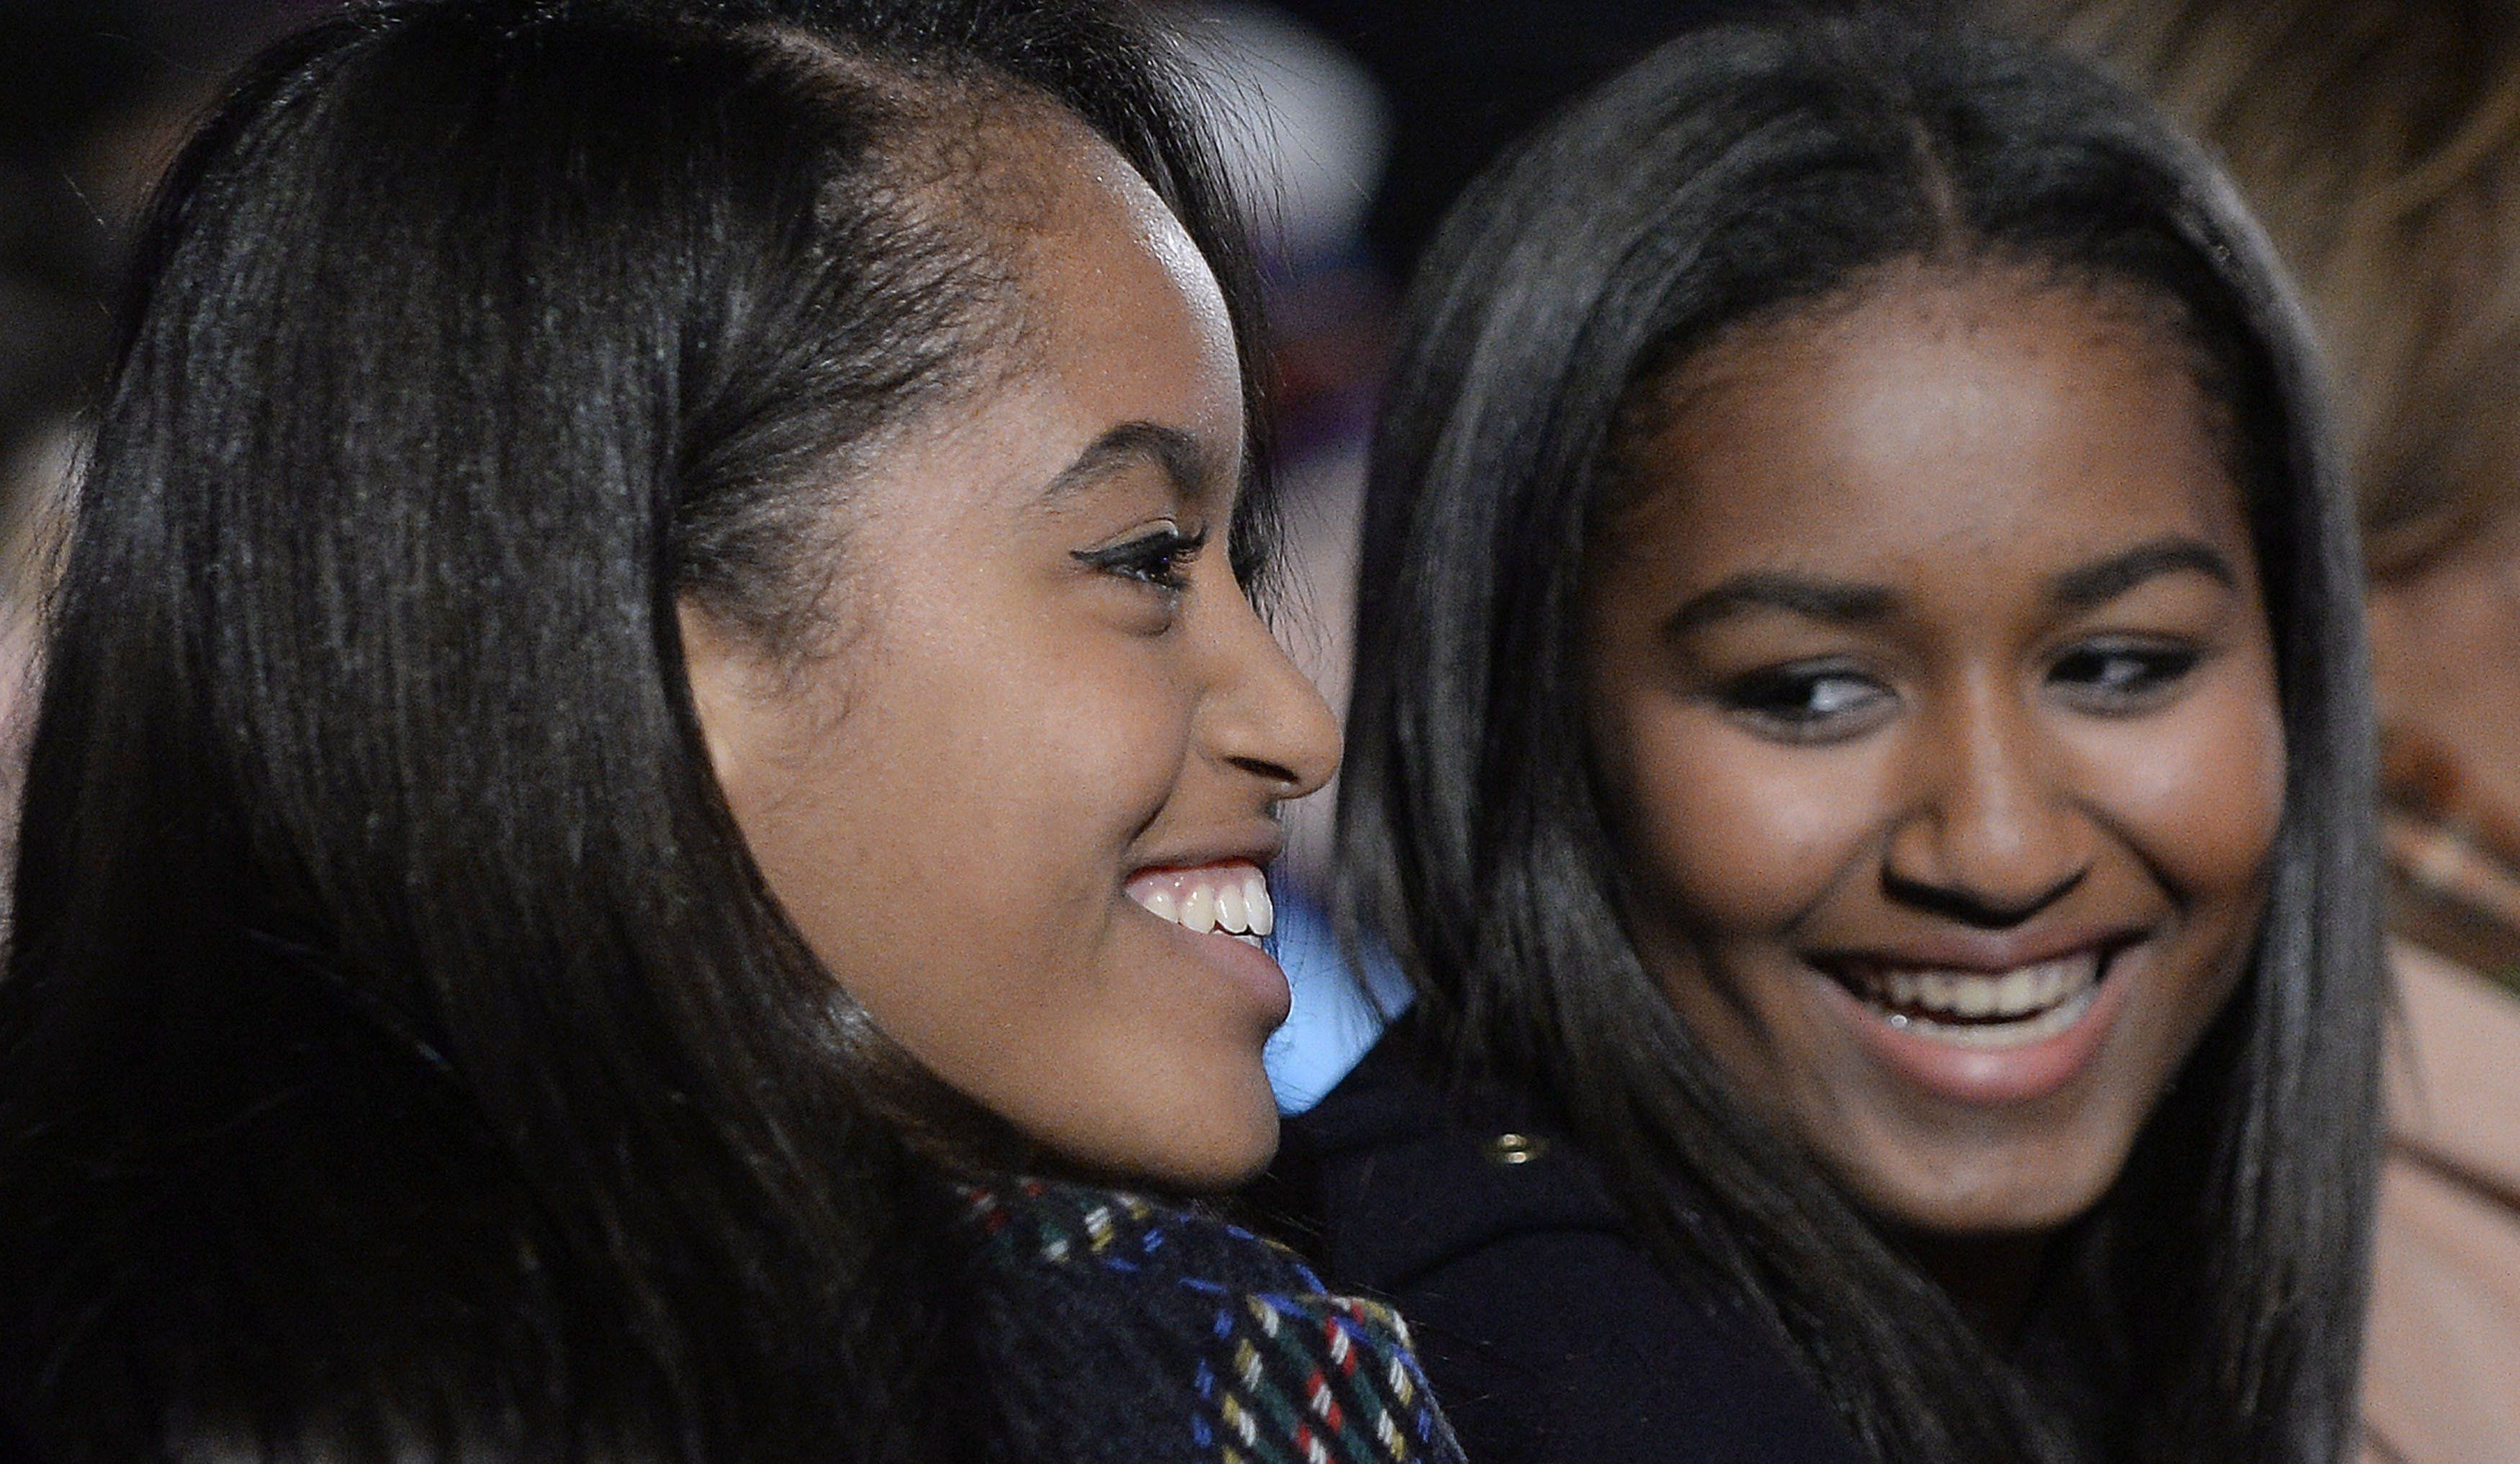 Malia and Sasha Obama.